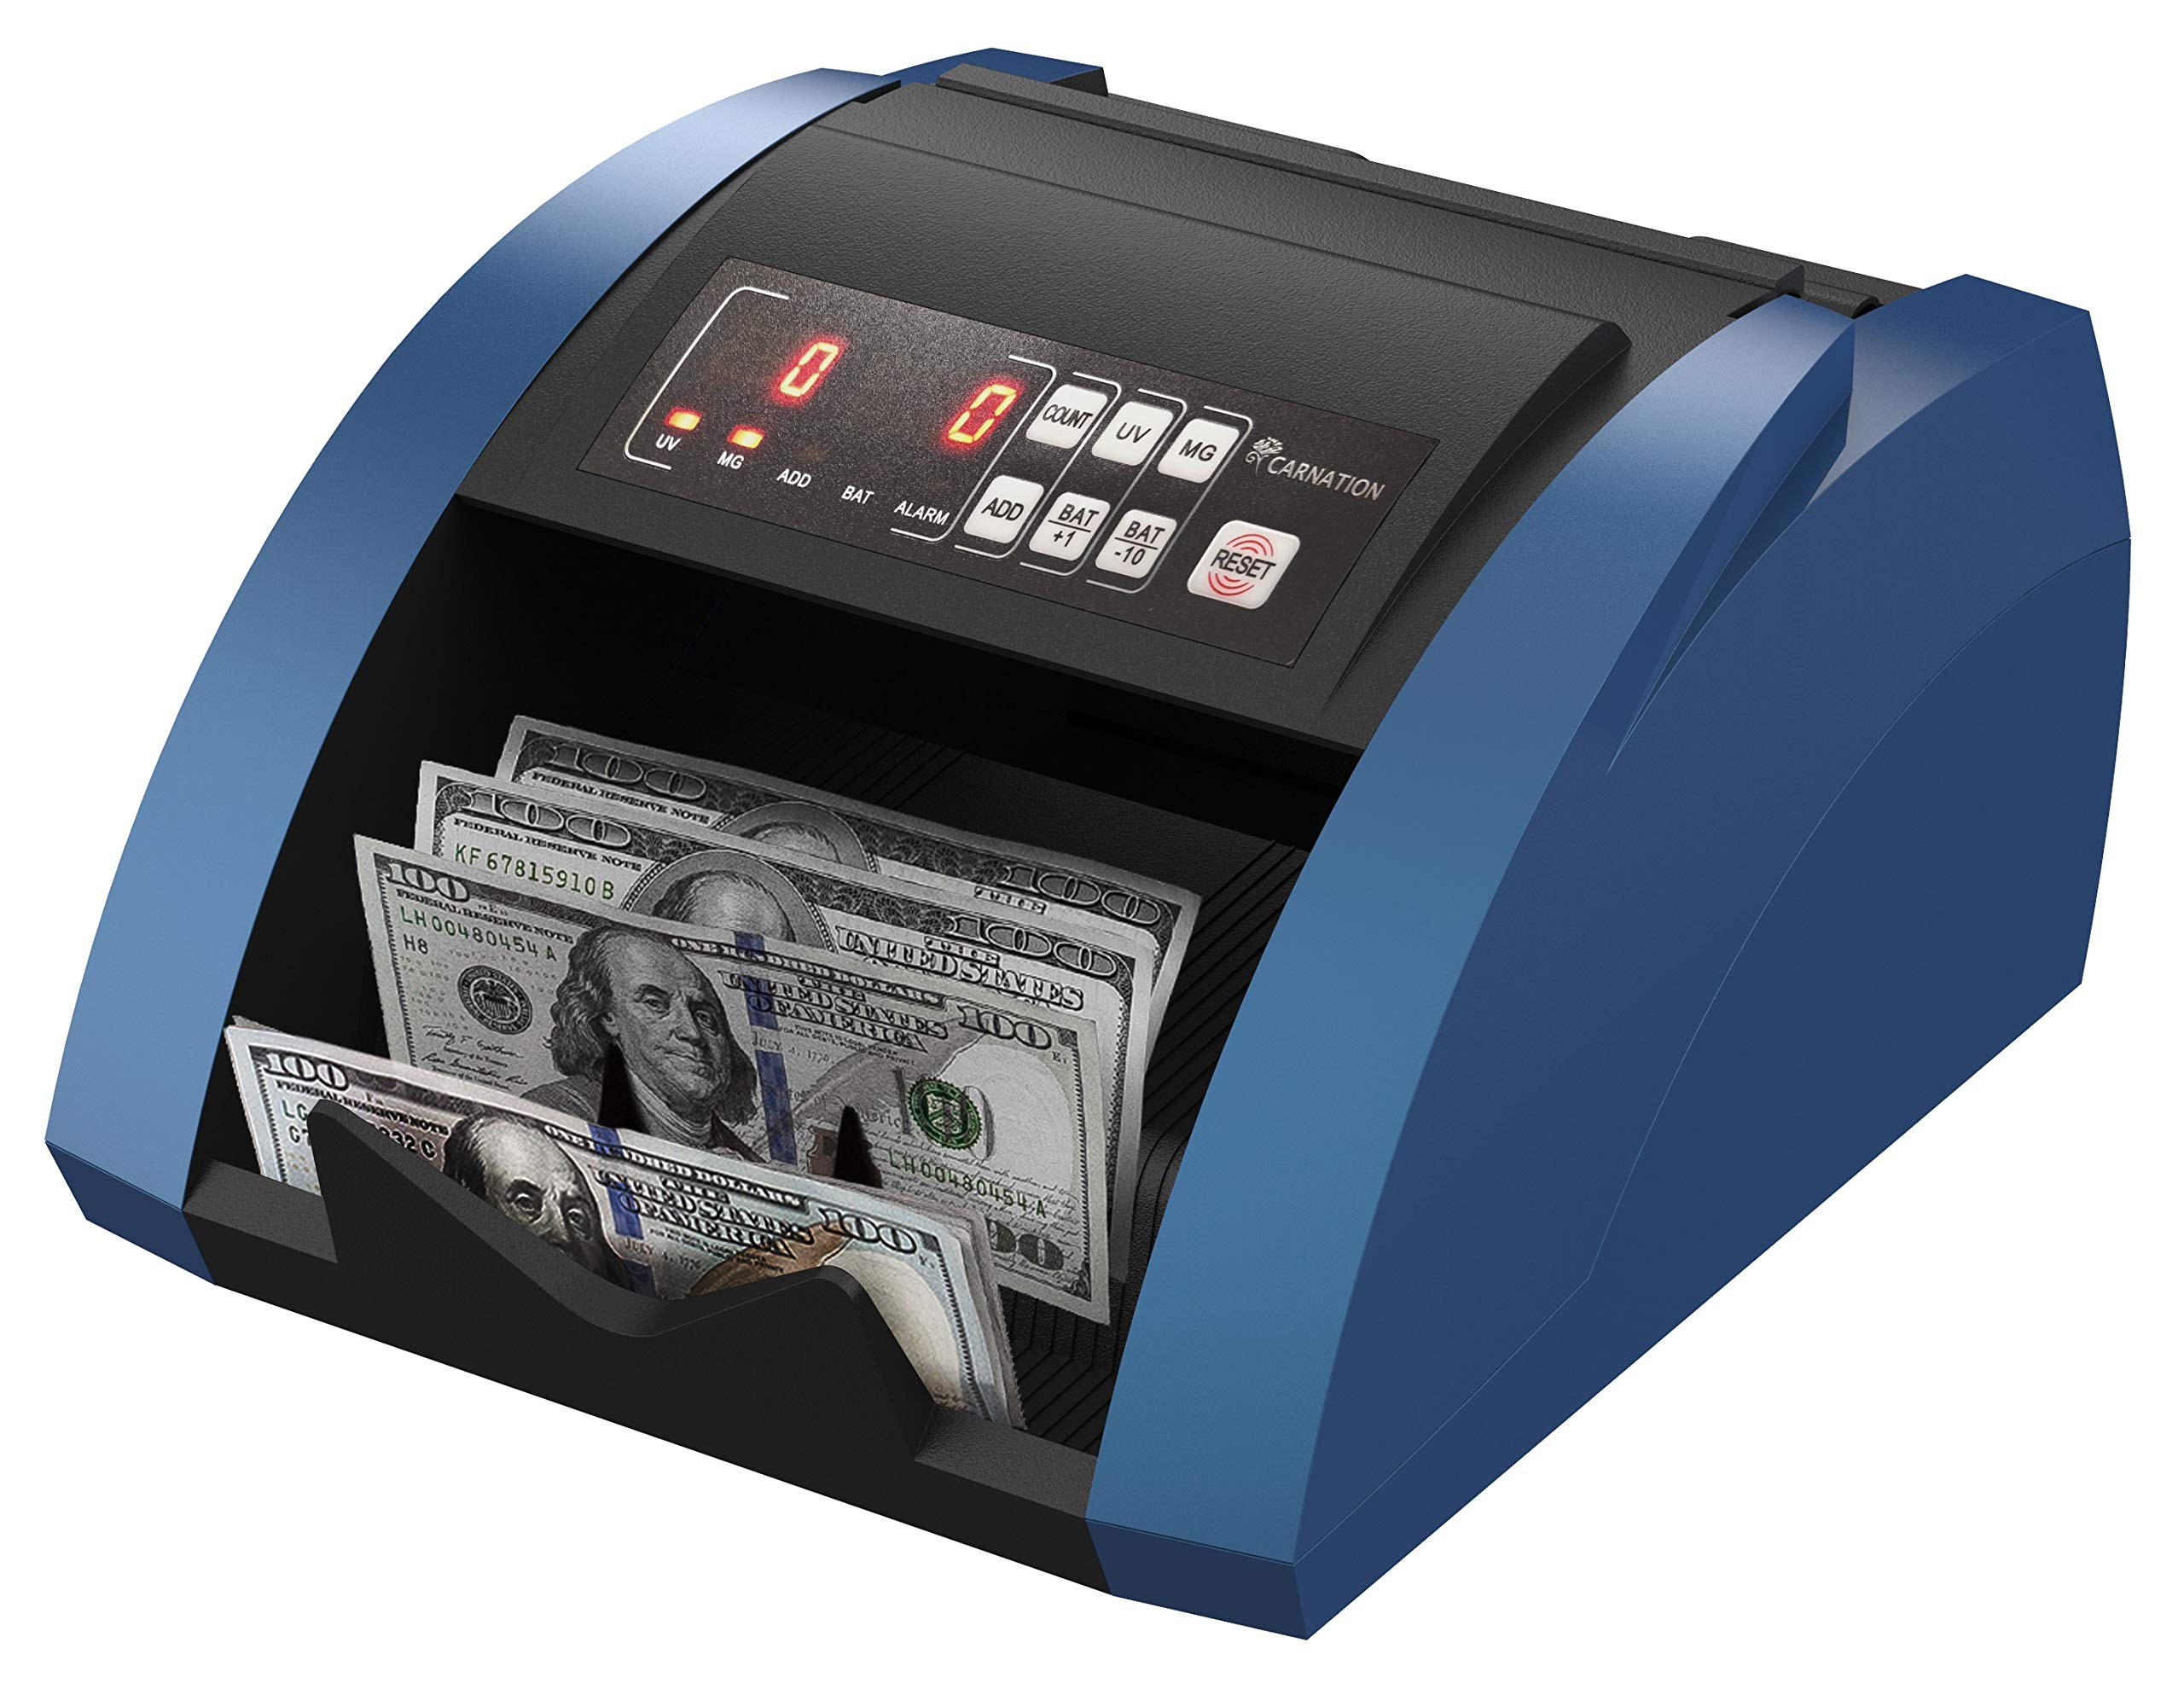 CARNATION USA Bill Money Counter with UV and Magnetic Counterfeit Detection - with Free Counterfeit Detector Pens by Carnation